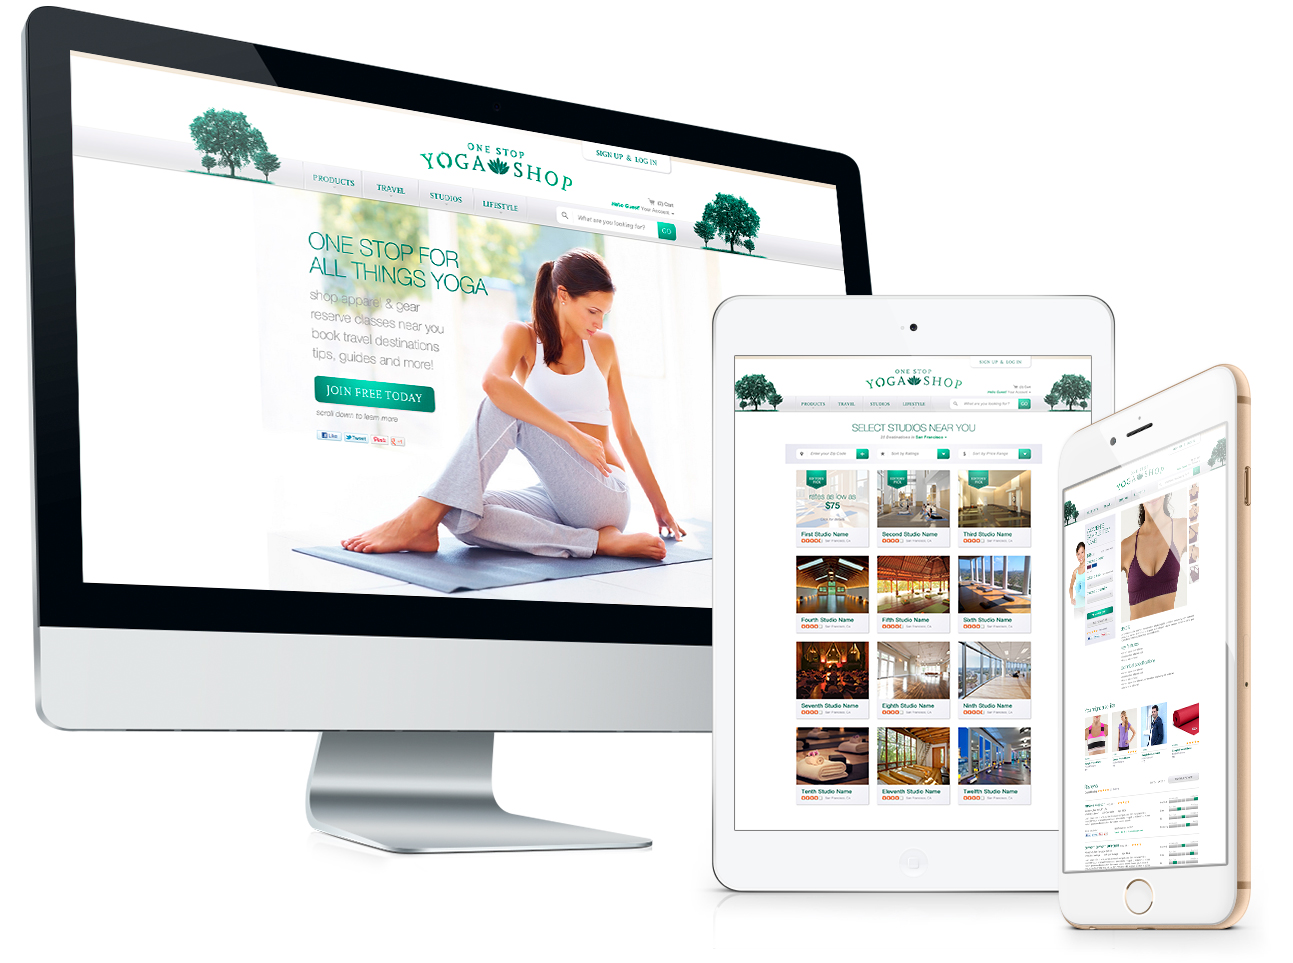 Eye-Def-Media-Design-One-Stop-Yoga-Shop-Website-Mobile